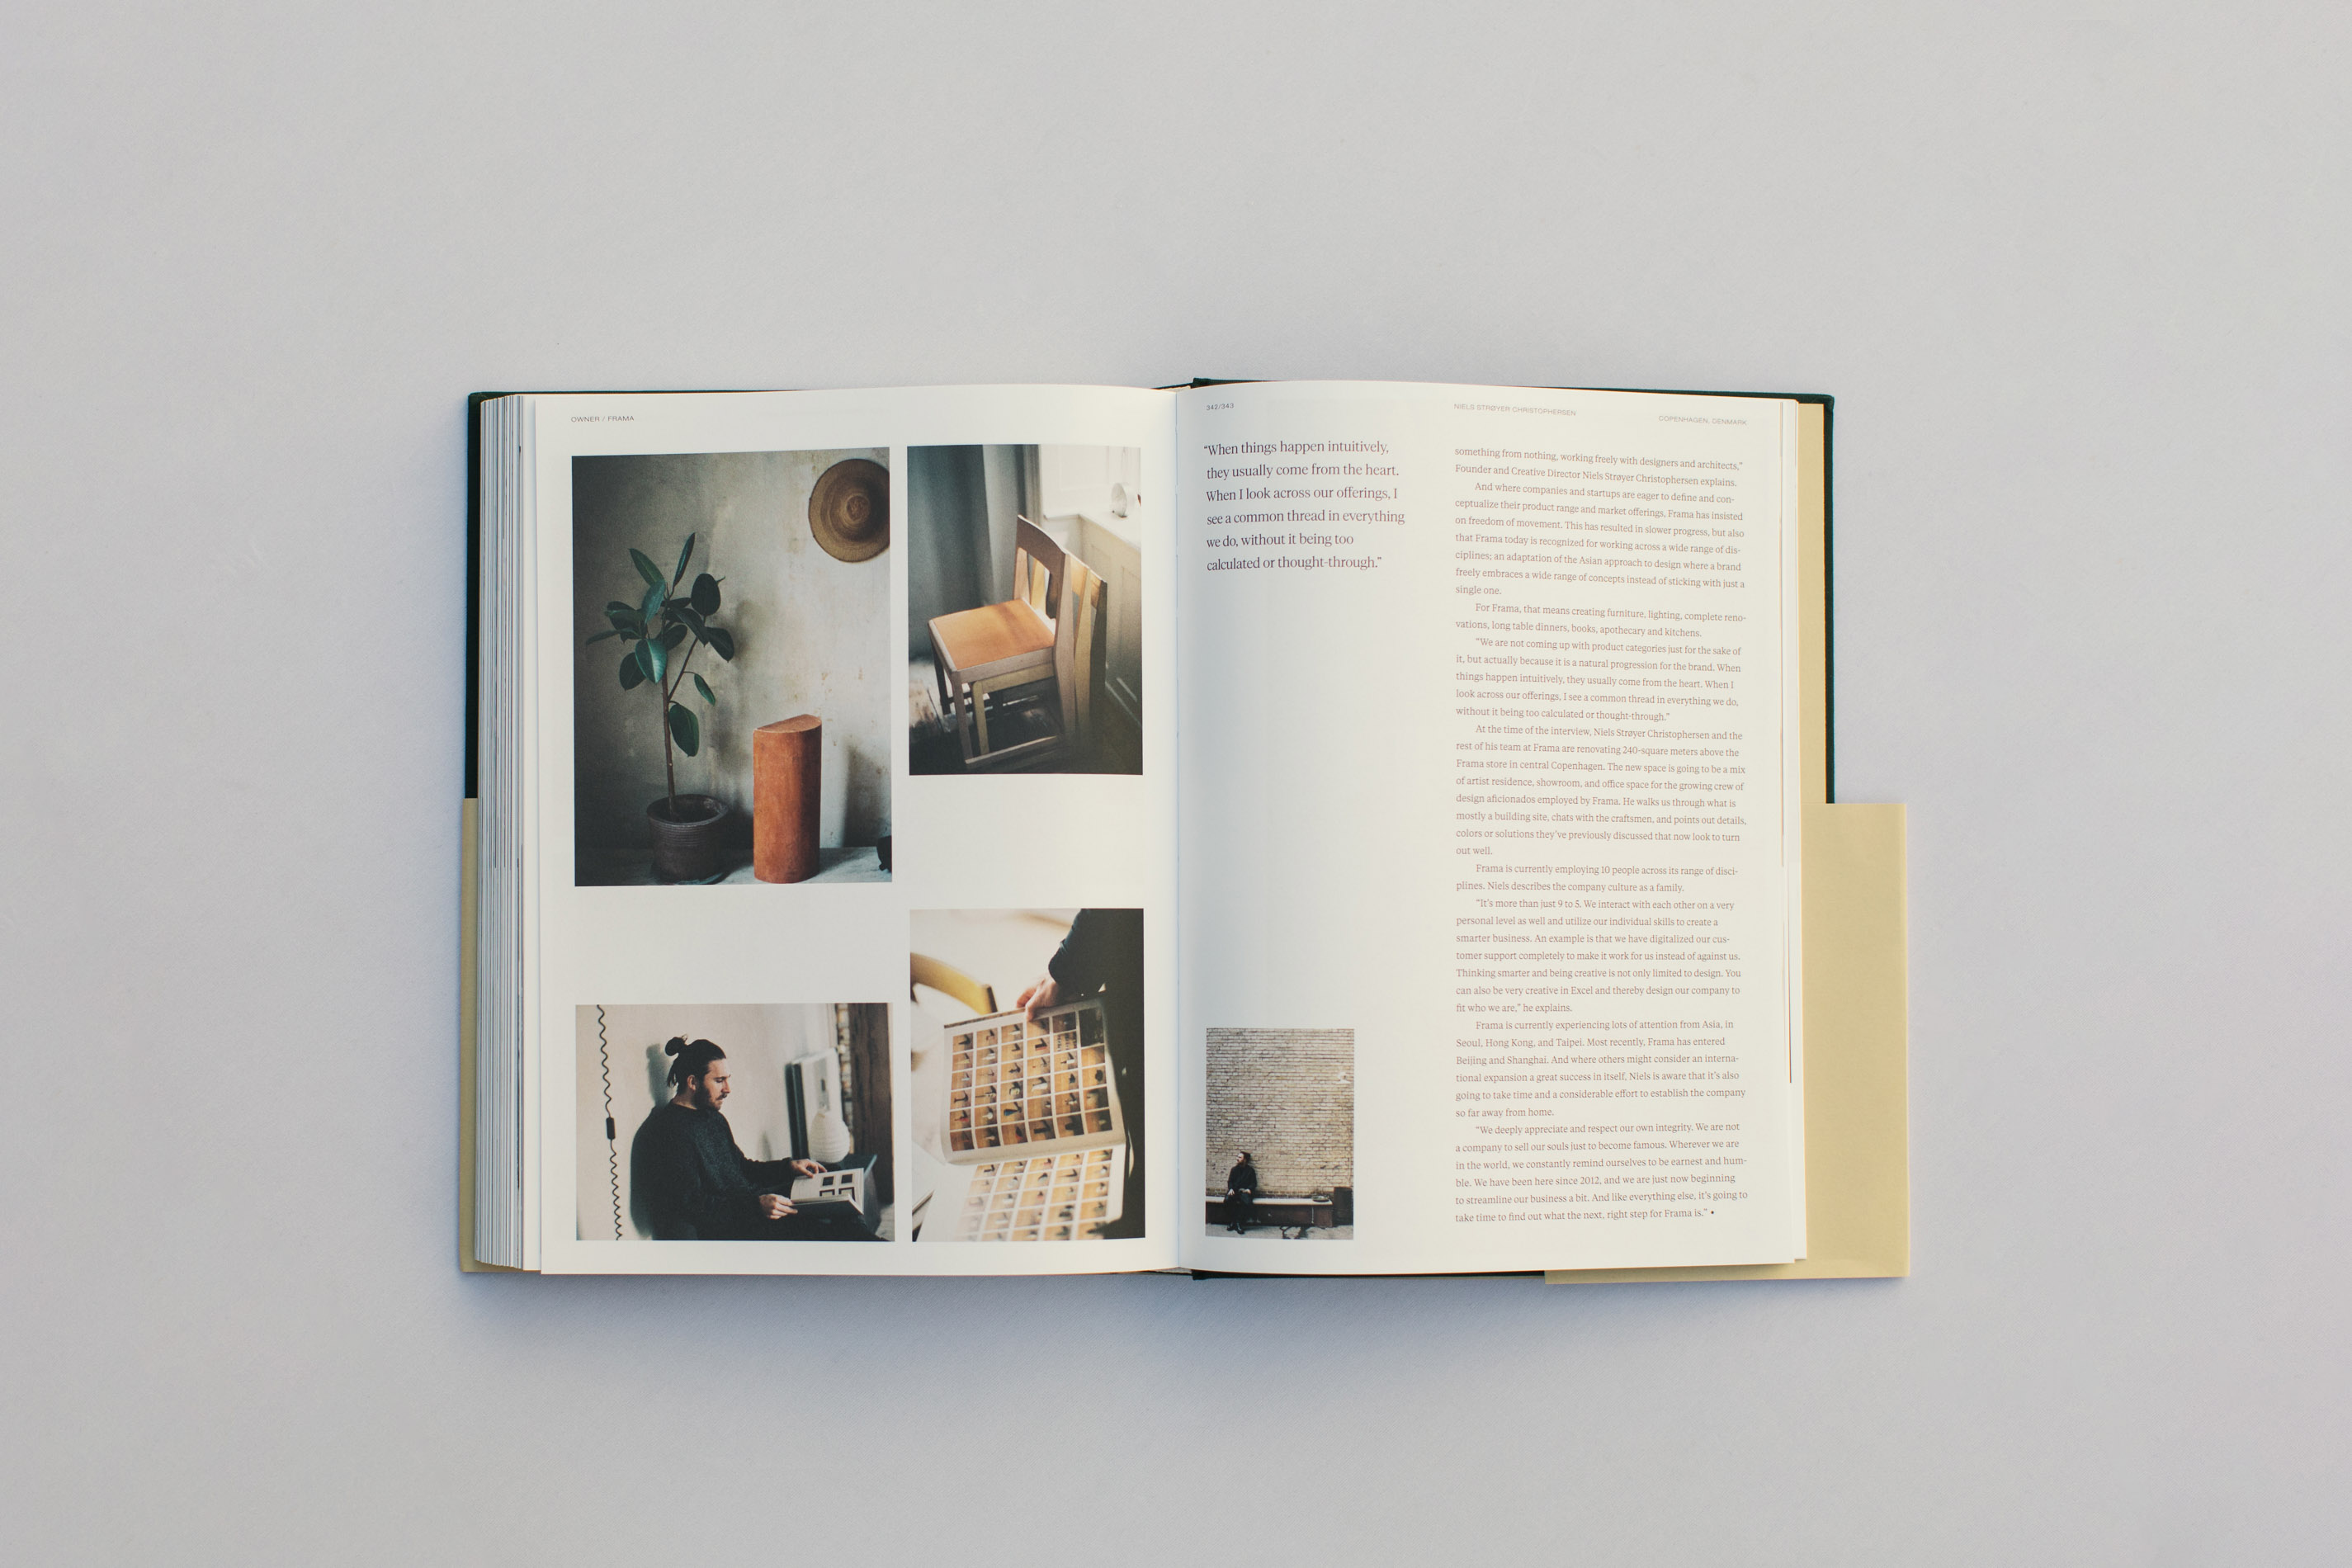 Faculty Department Volume 2, Justin Chung, Book